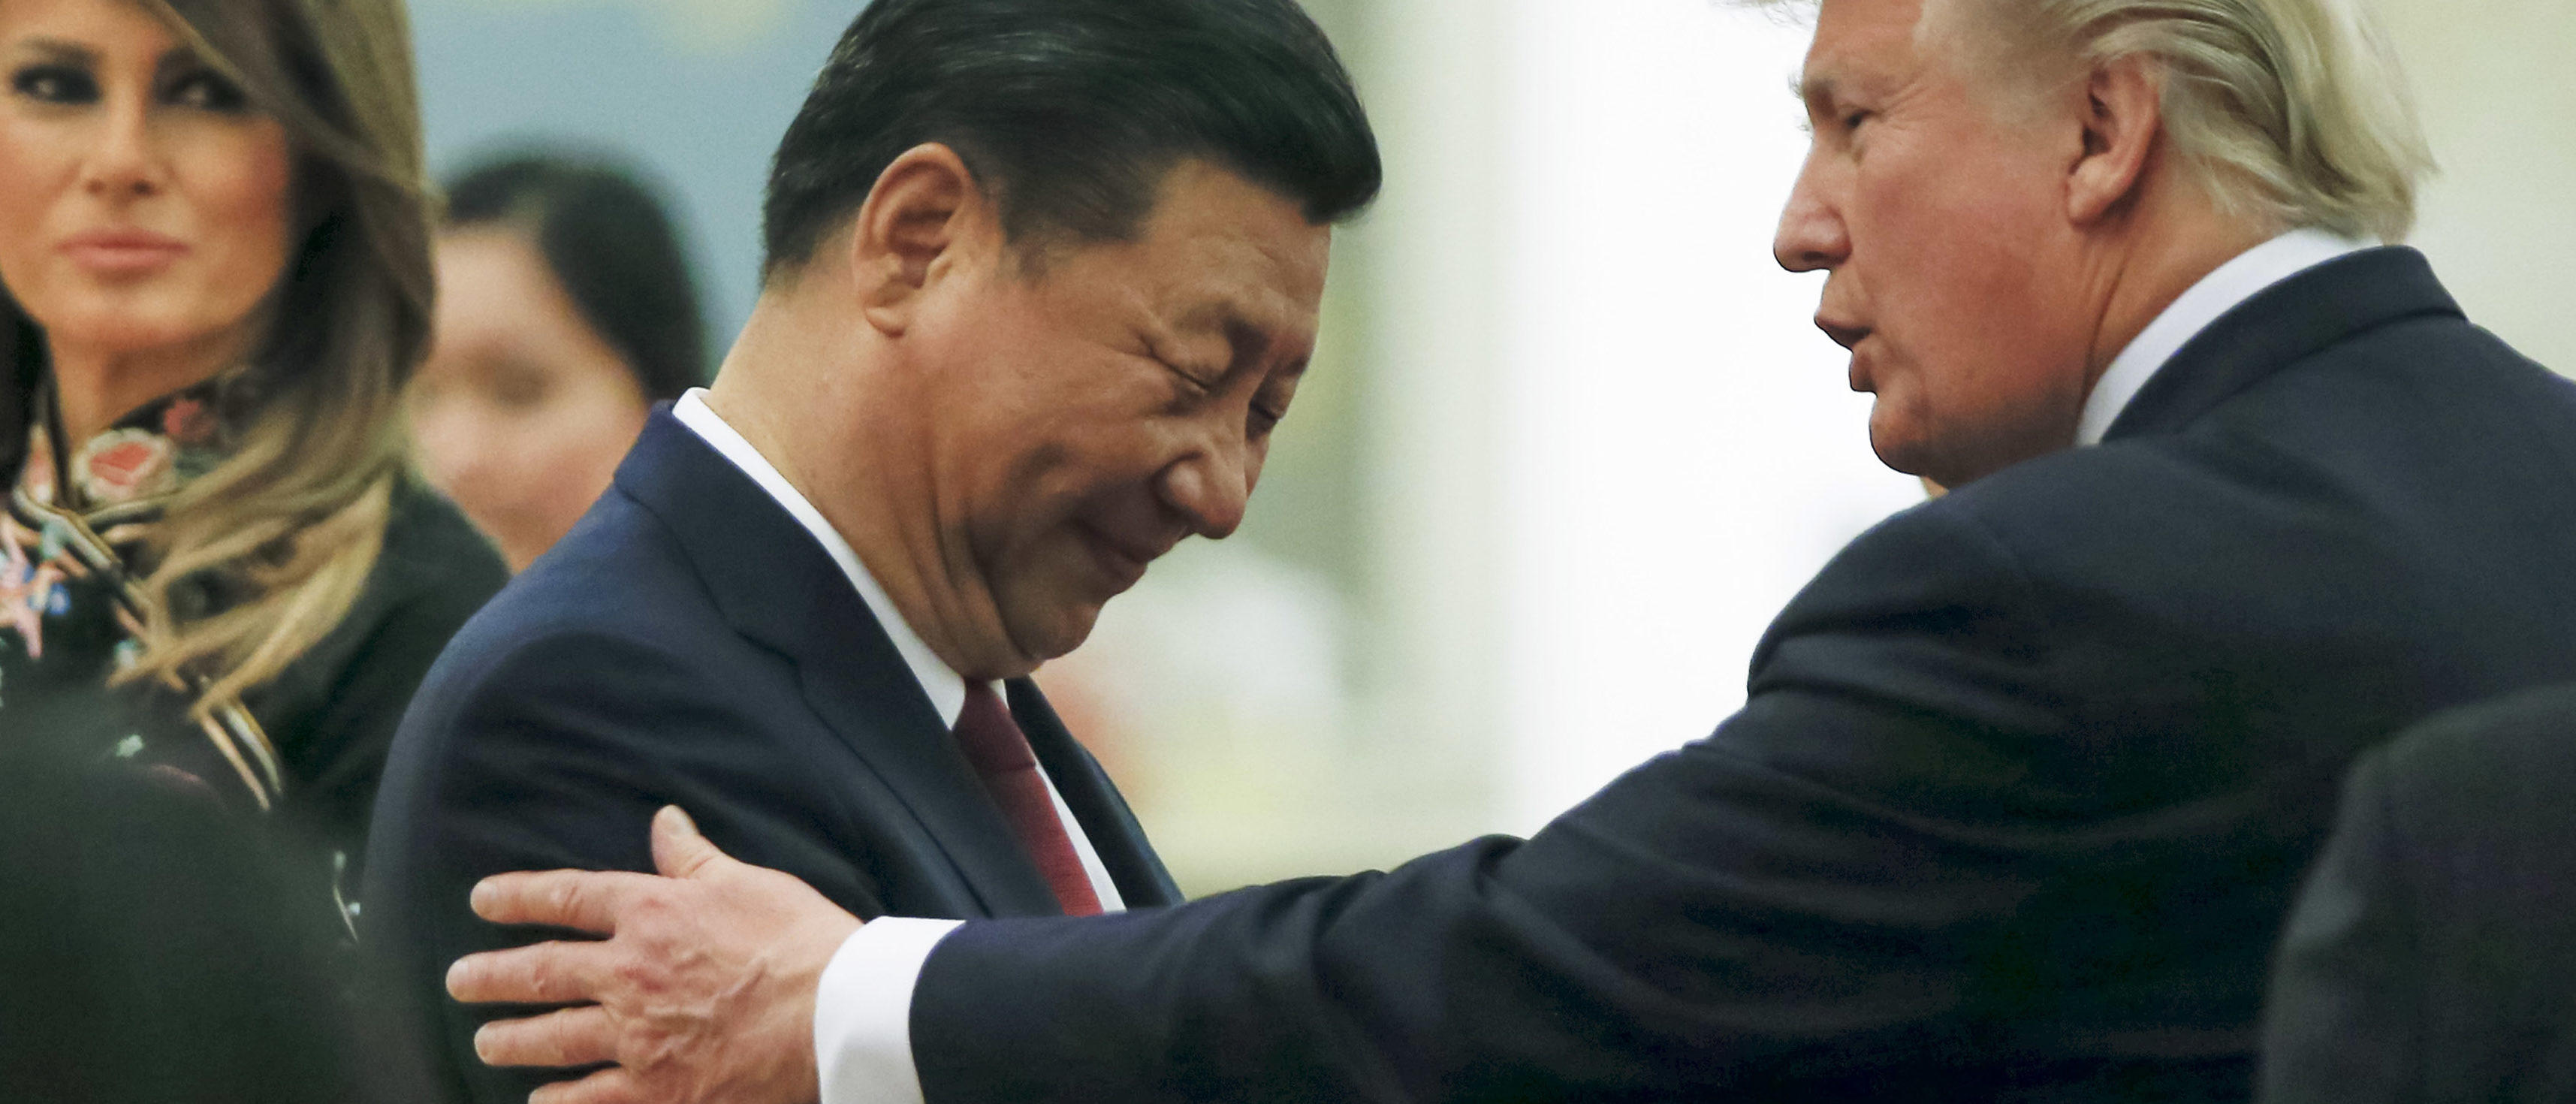 WHITON: Apple, Tesla And Hollywood Love The Chinese Government; What Will US Do About It?